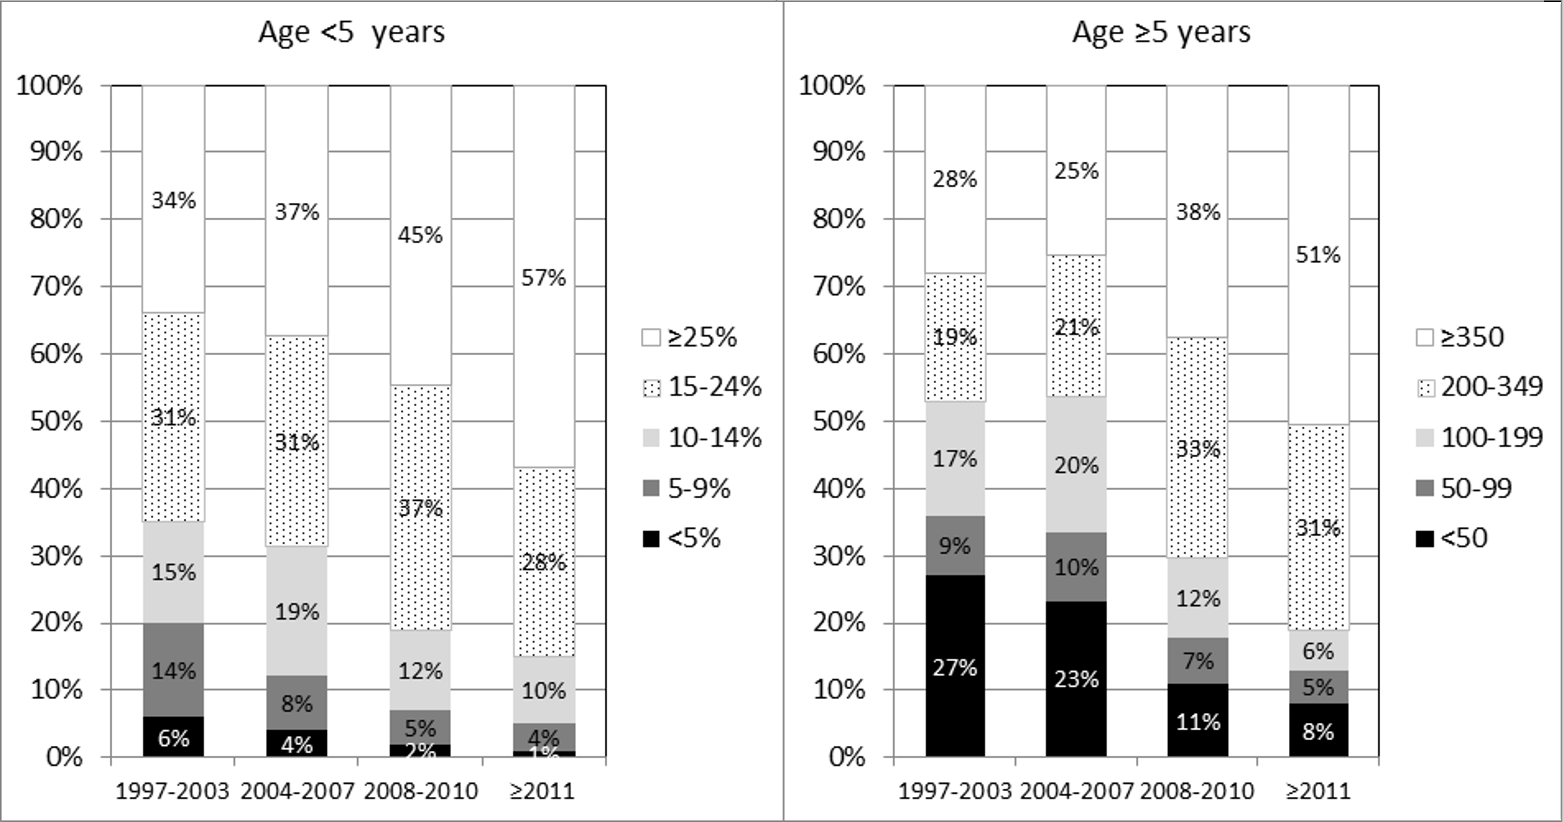 CD4% (left panel) and count (right panel) at initiation of cART, by age group and calendar period.